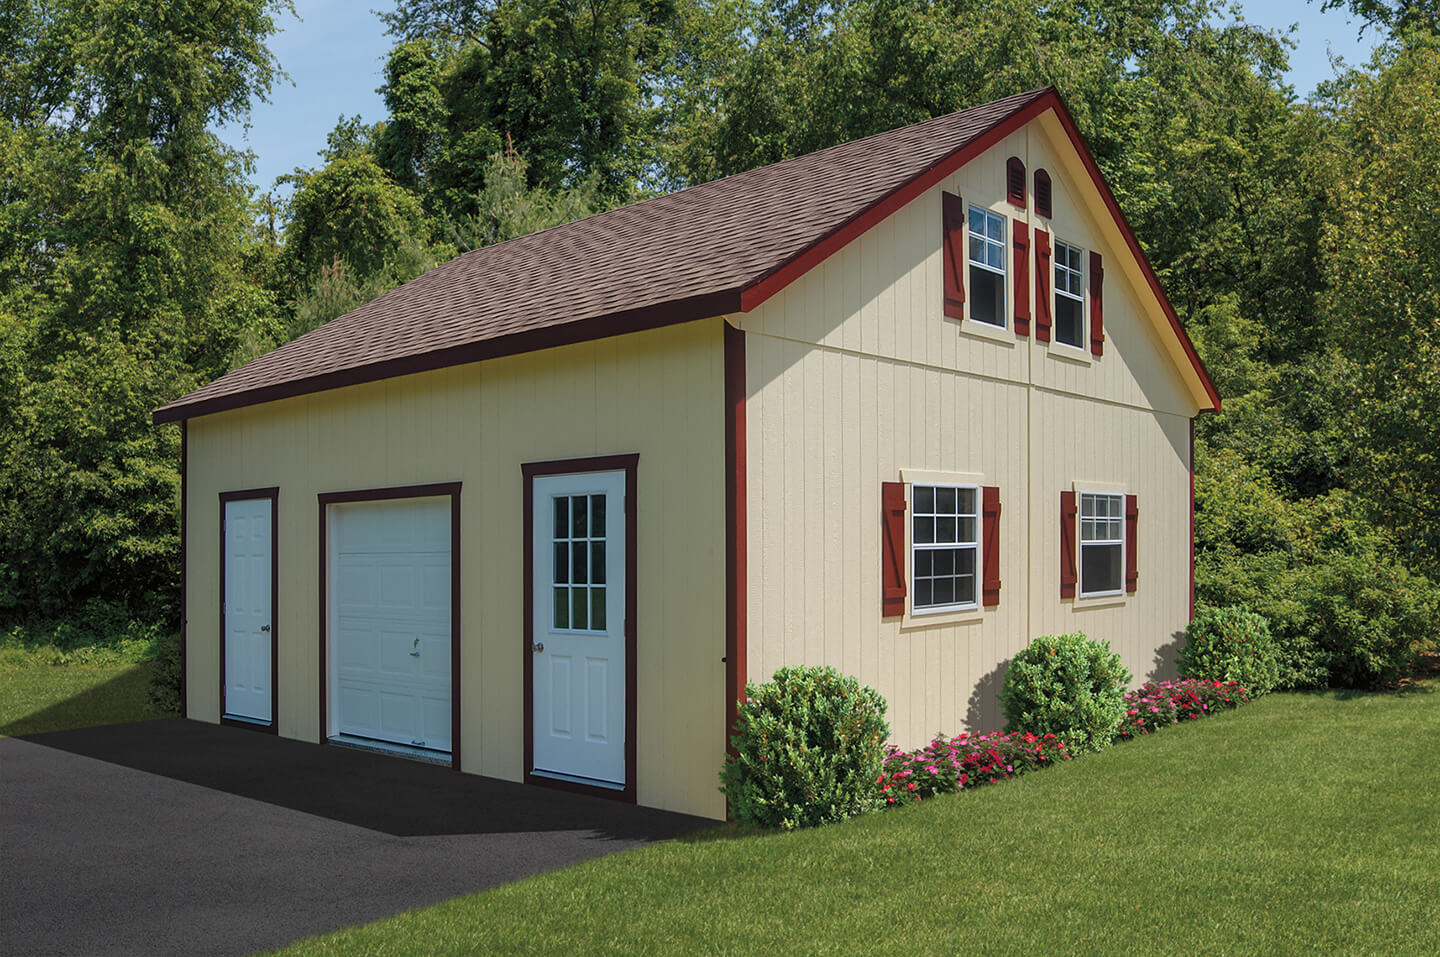 Garage Gable End Siding Vinyl Siding Home Remodel Windows